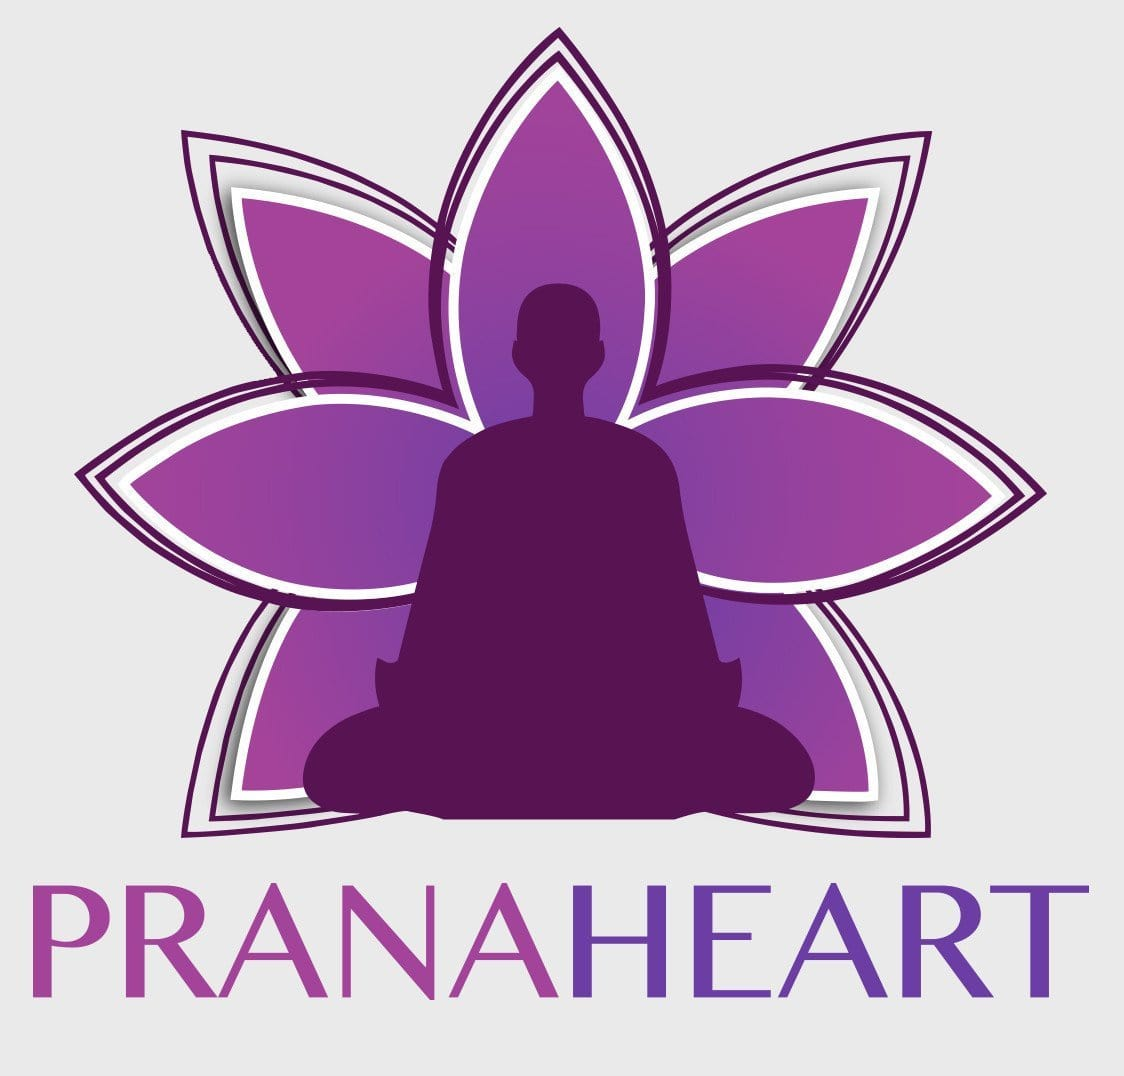 Prana Heart Gift Card - Prana Heart: Everyday Mindfulness